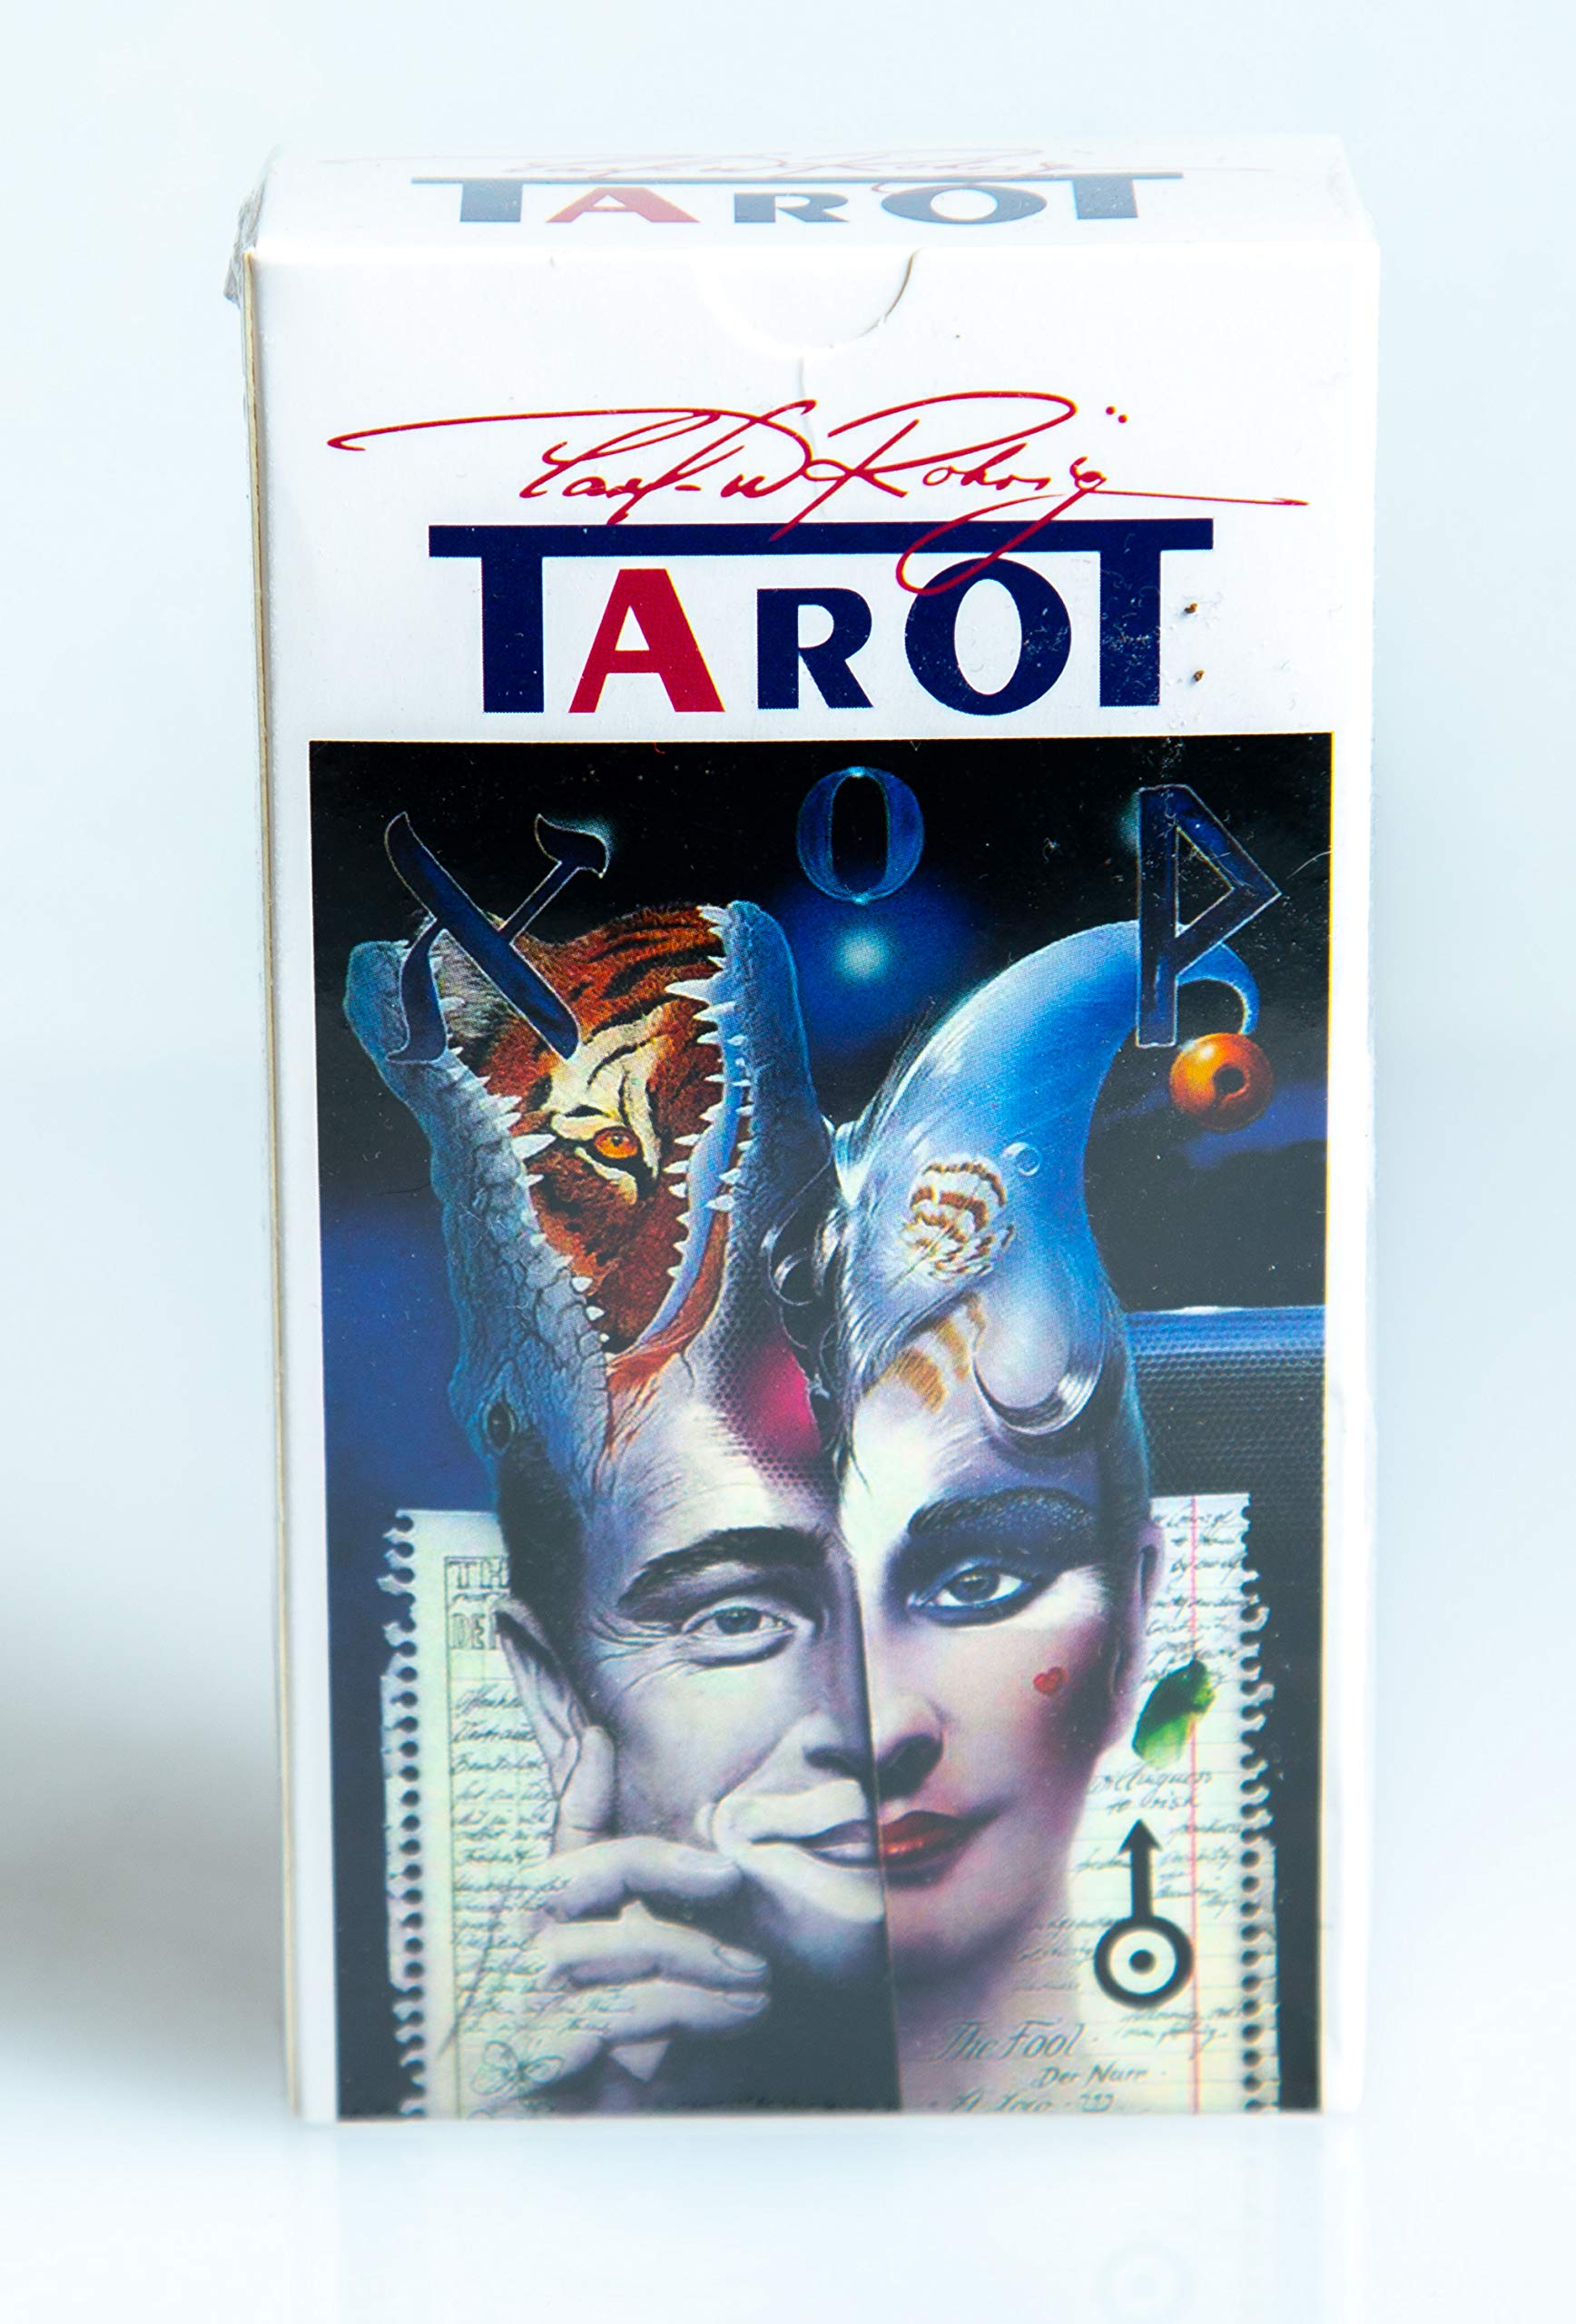 New 78 The Rohrig Tarot Tarot Cards Deck (Replica) Valentines Gift by Unknown (Image #4)